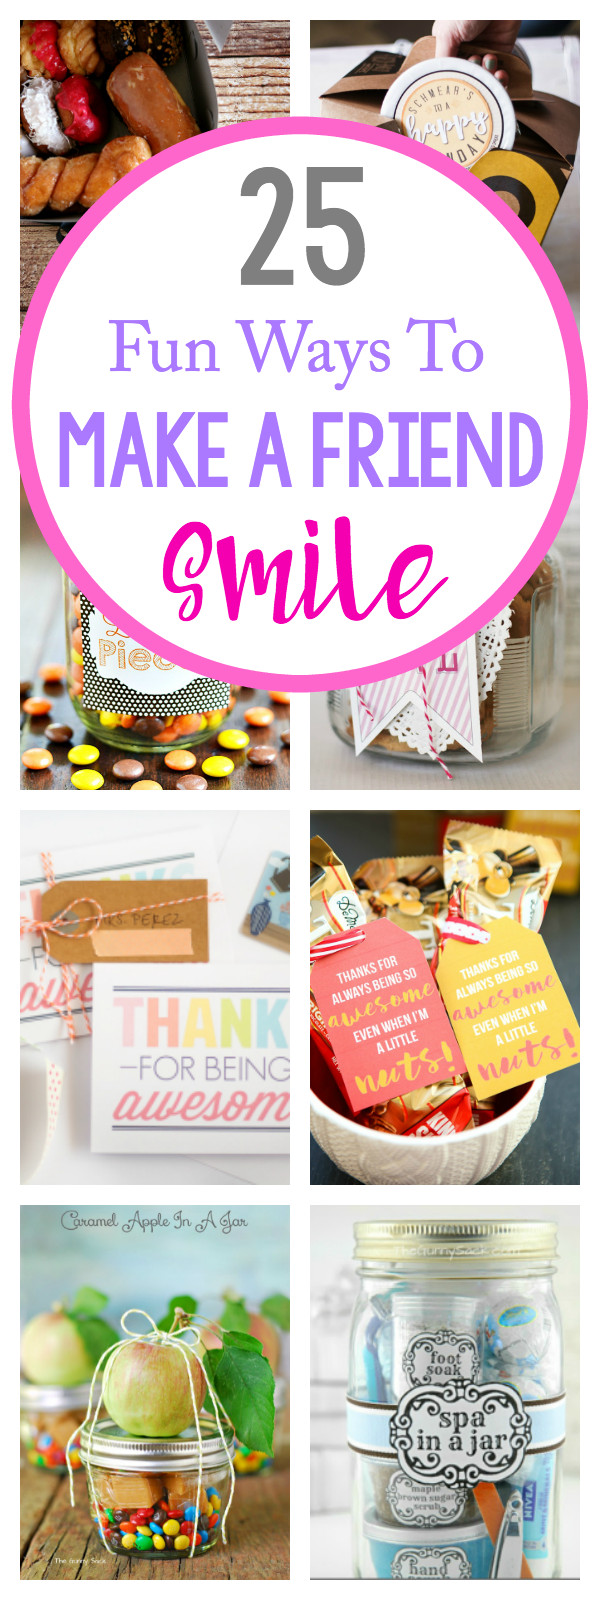 DIY Valentine'S Gifts For Friends  Cute Gifts for Friends for Any Occasion – Fun Squared